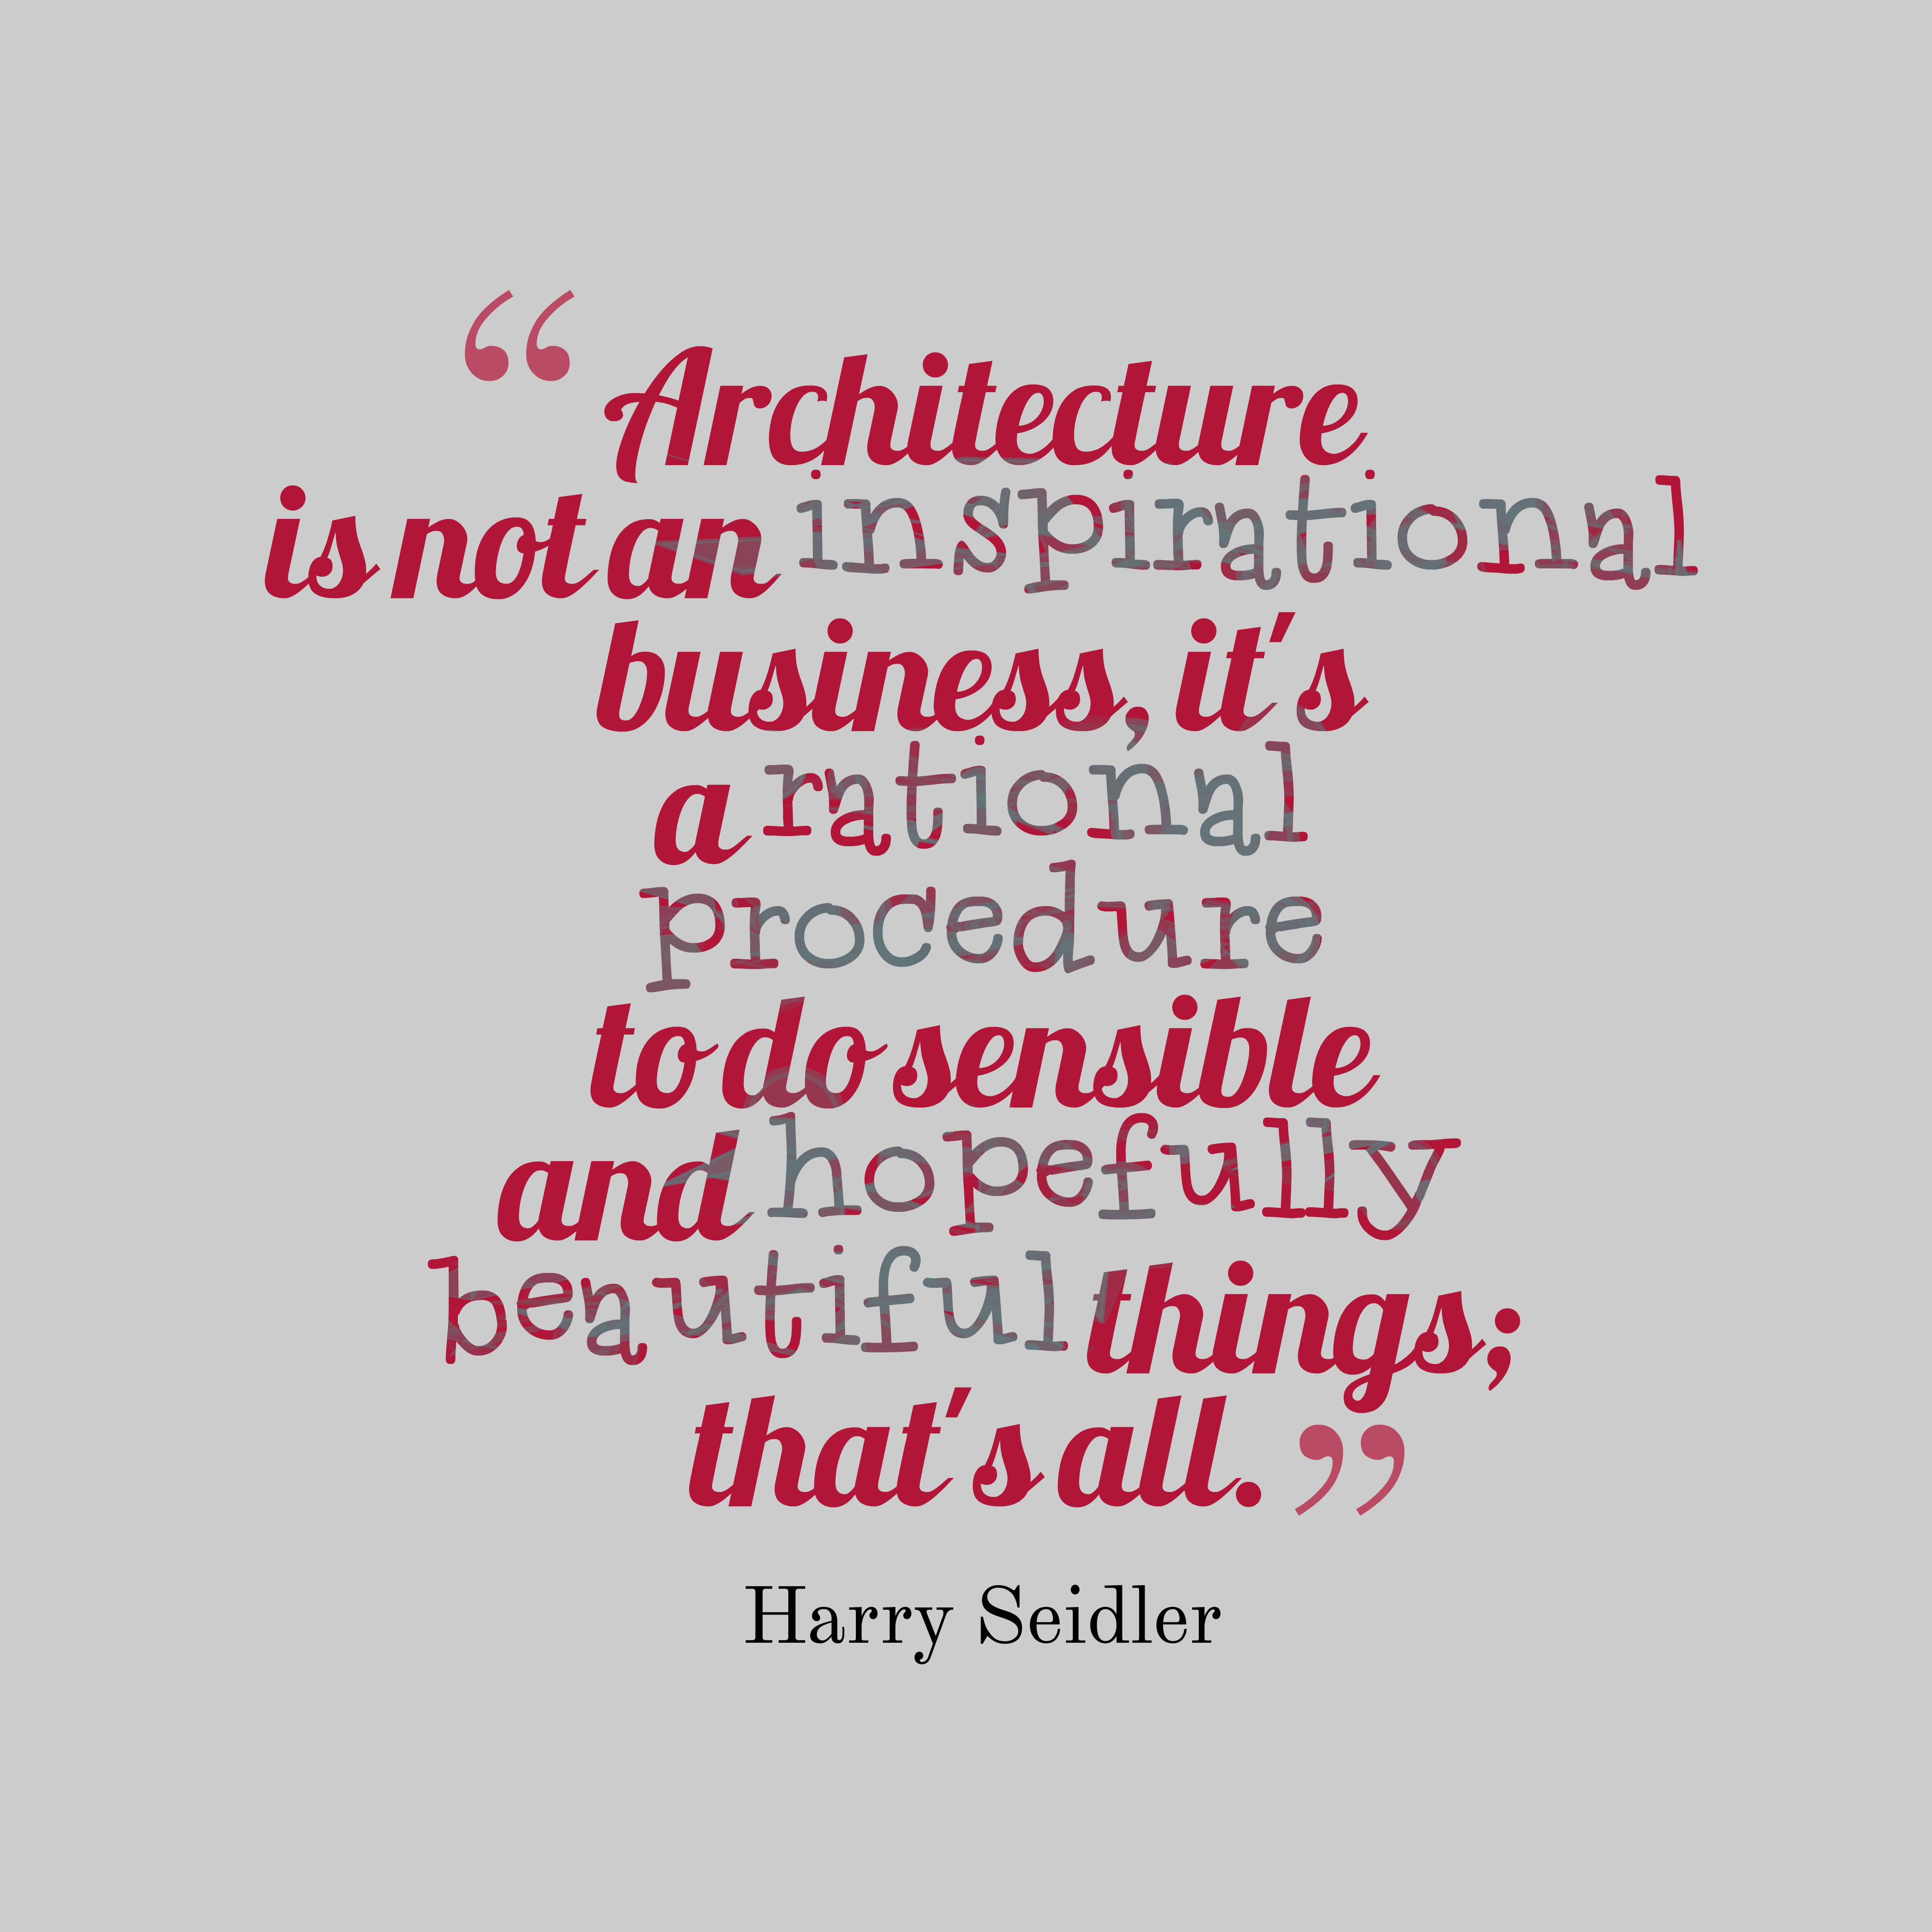 Picture 187 Harry Seidler Quote About Architecture